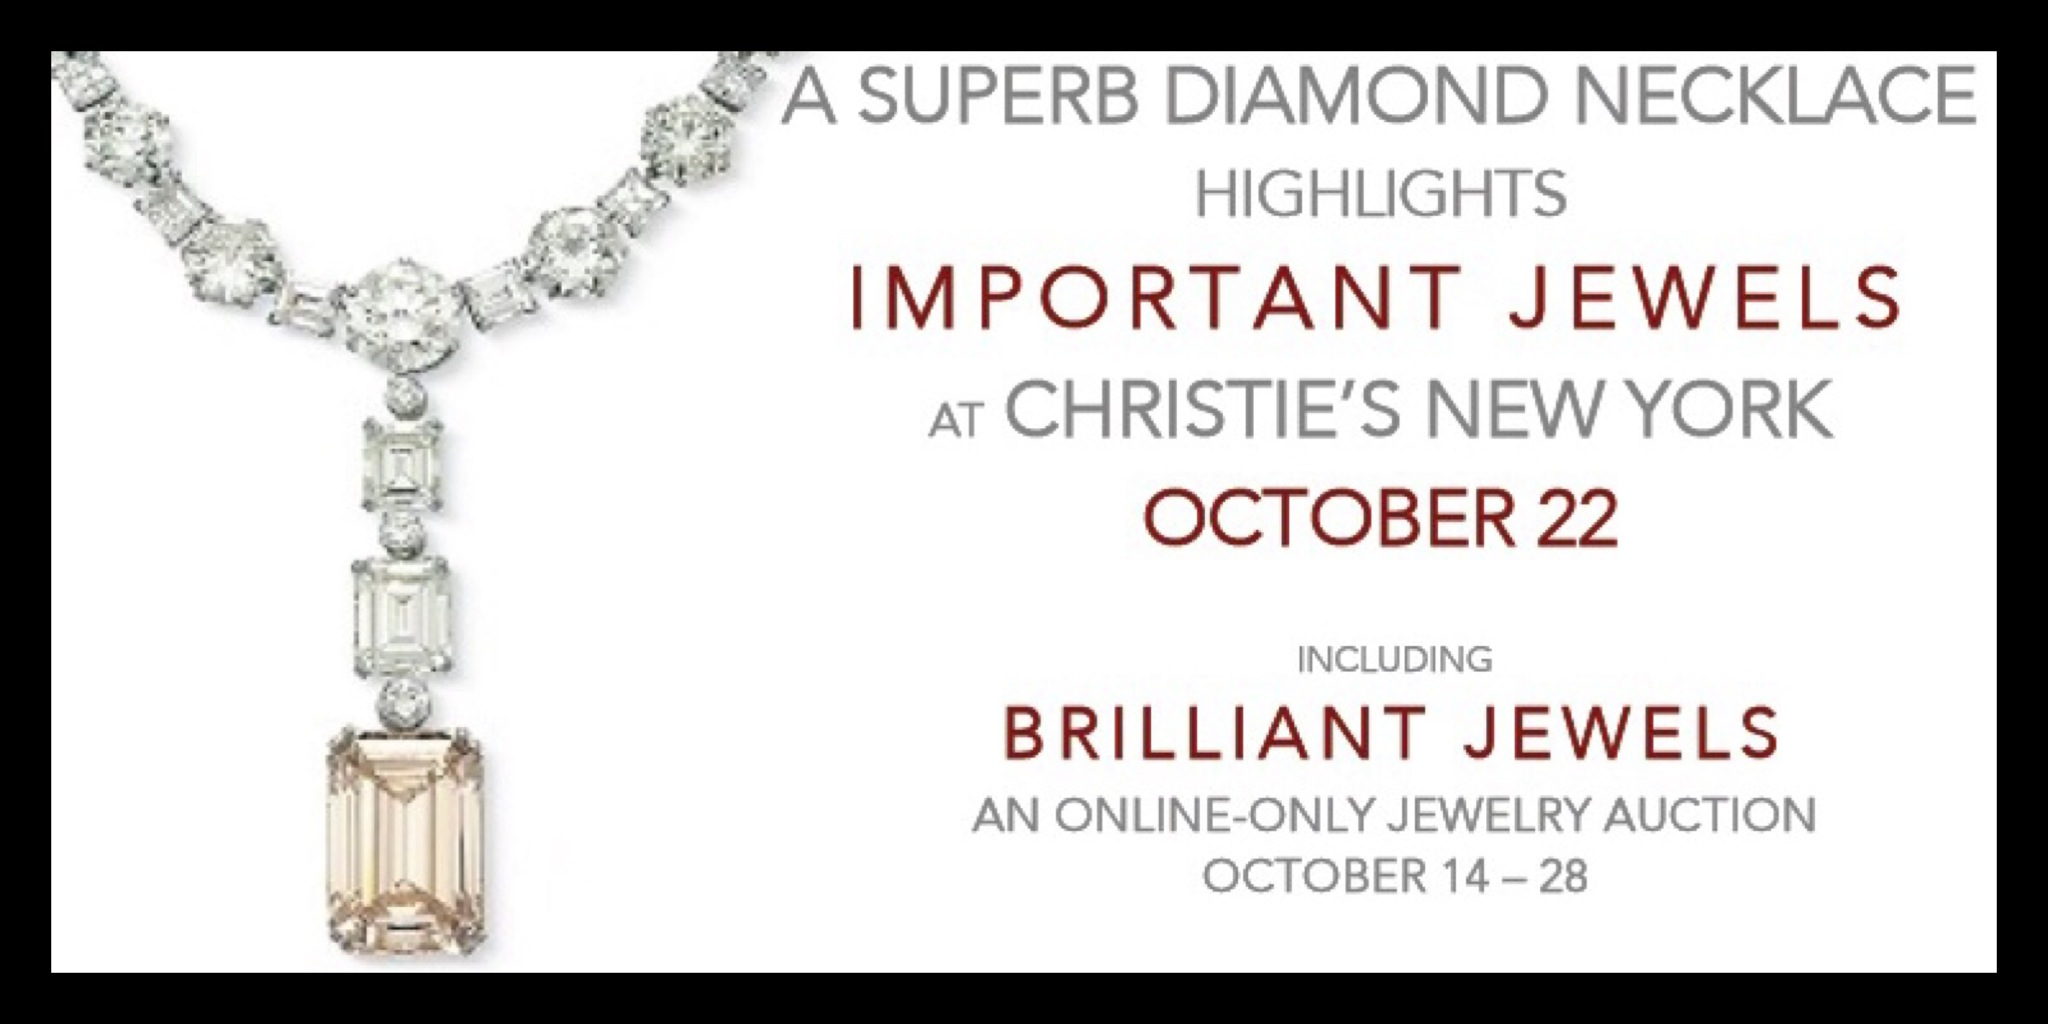 Important jewels at Christies | New York